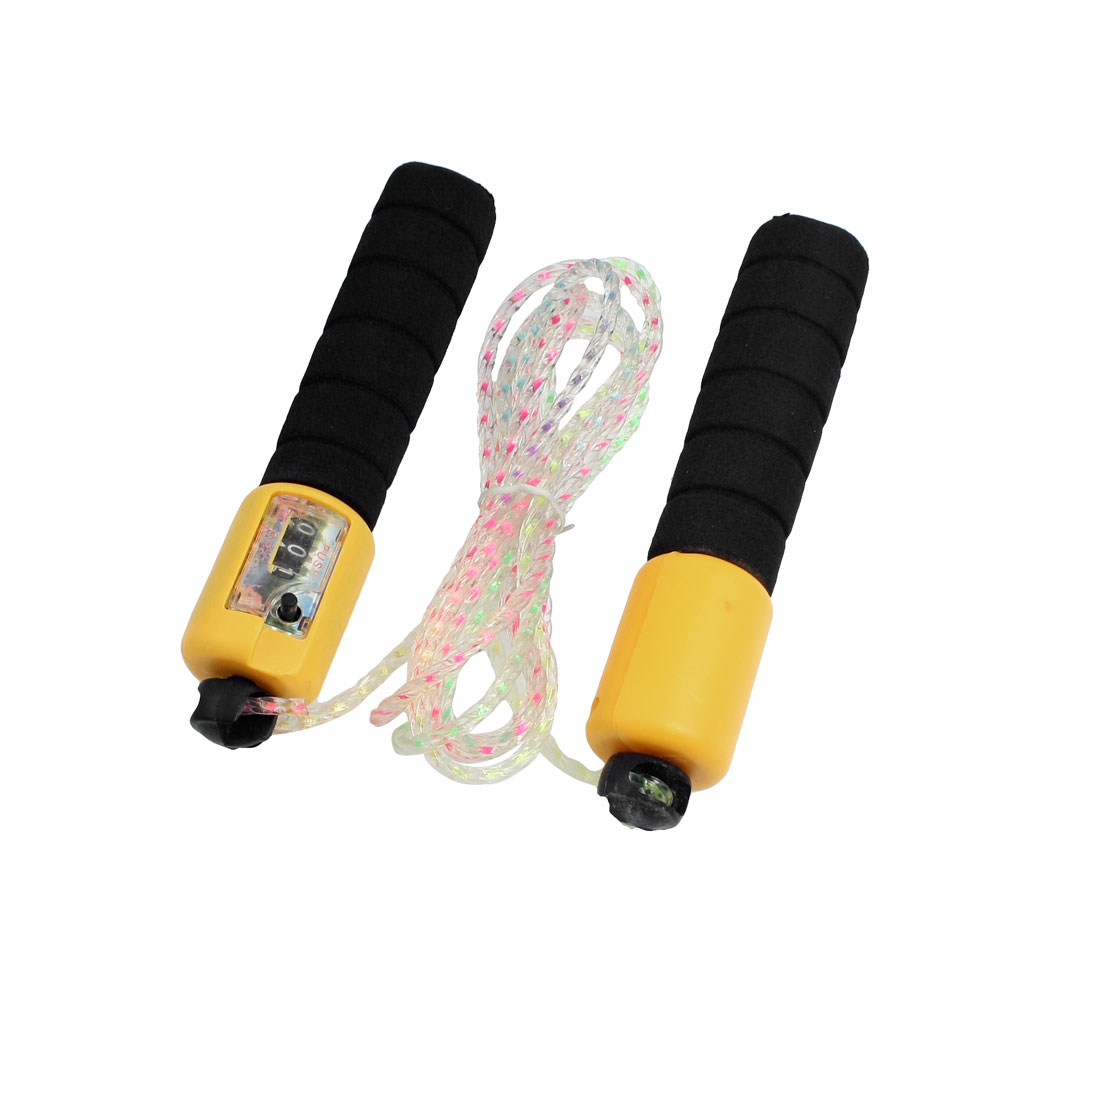 Training Black Yellow Nonslip Grip Counter Skipping Jumping Rope 2.5M